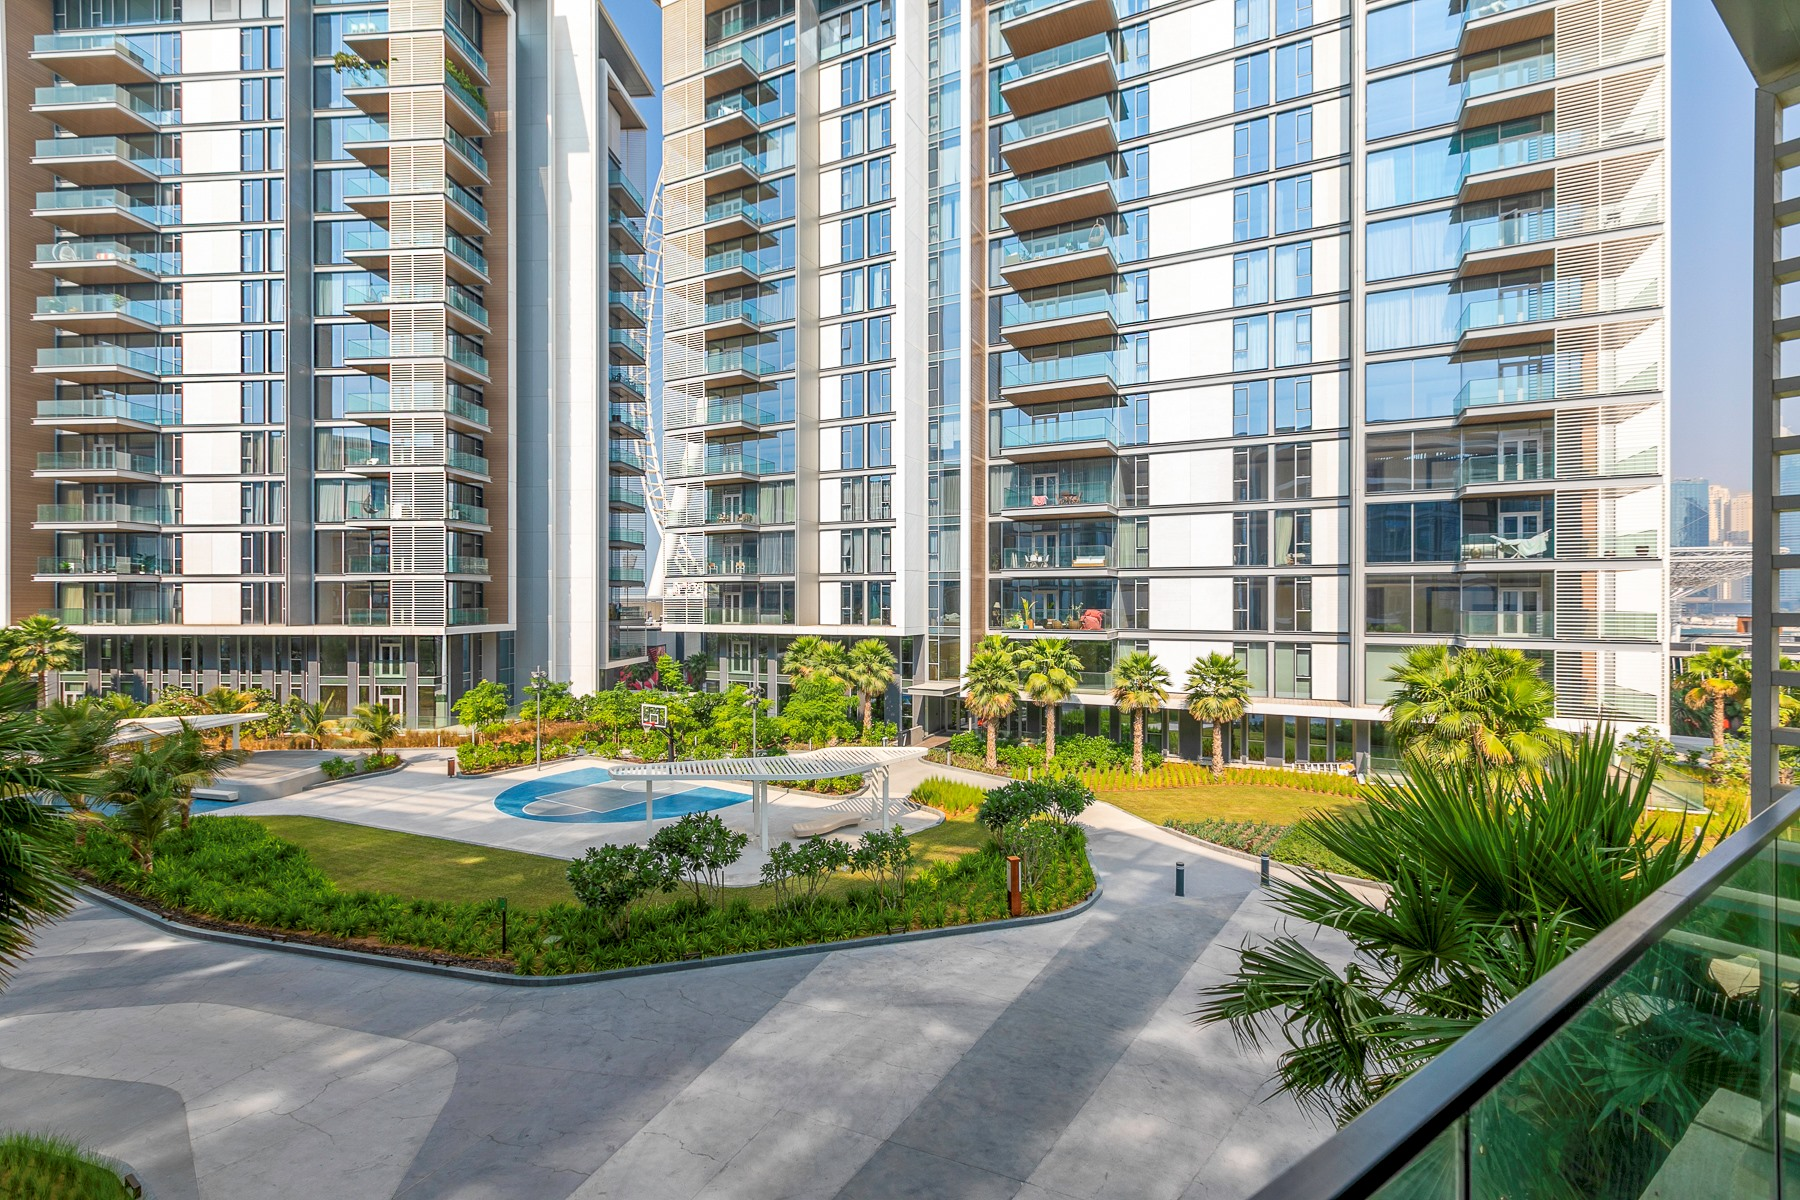 Apartment Experience the Bluewaters lifestyle On This All New 1 Bed in Building 5 photo 21298948